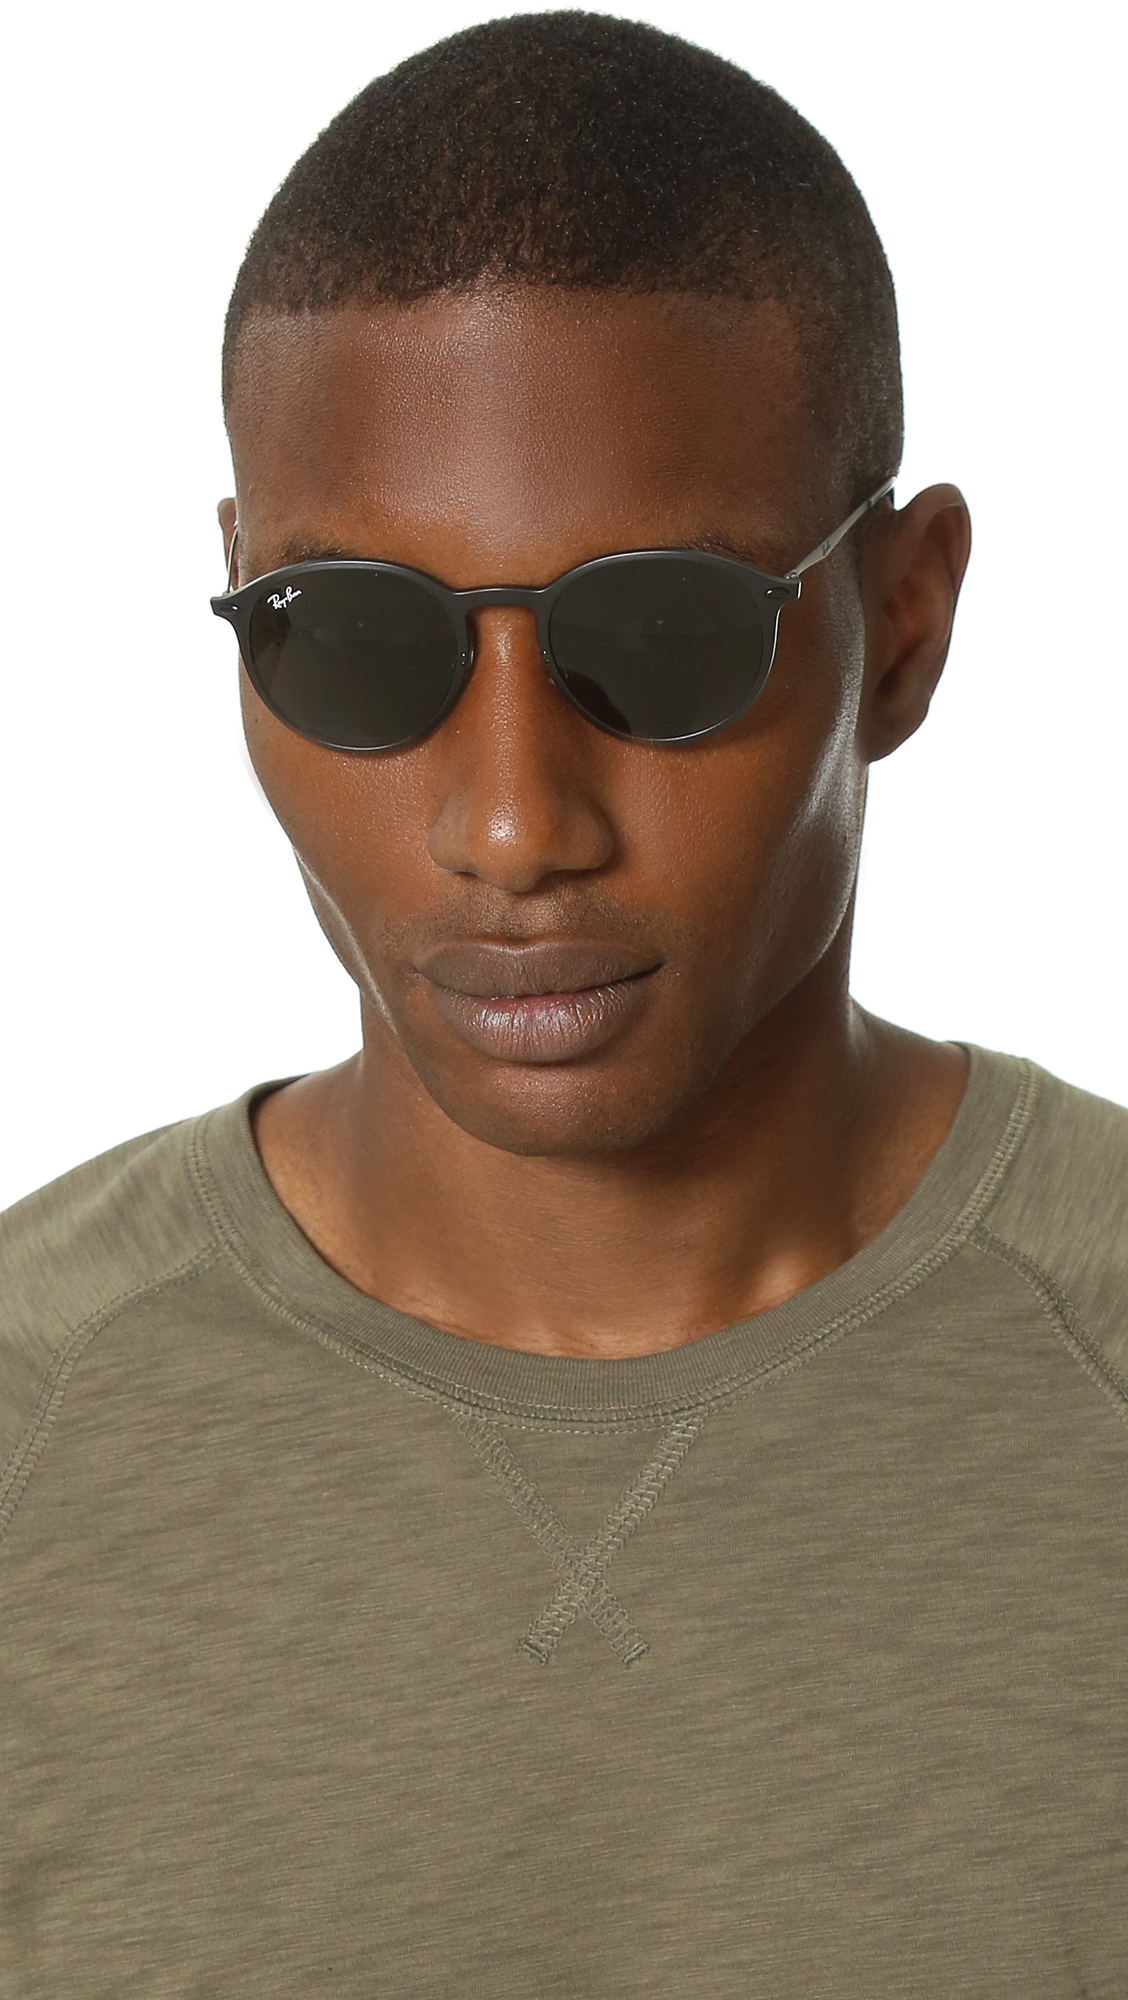 Lyst - Ray-Ban Lightweight Round Sunglasses With Flash ...